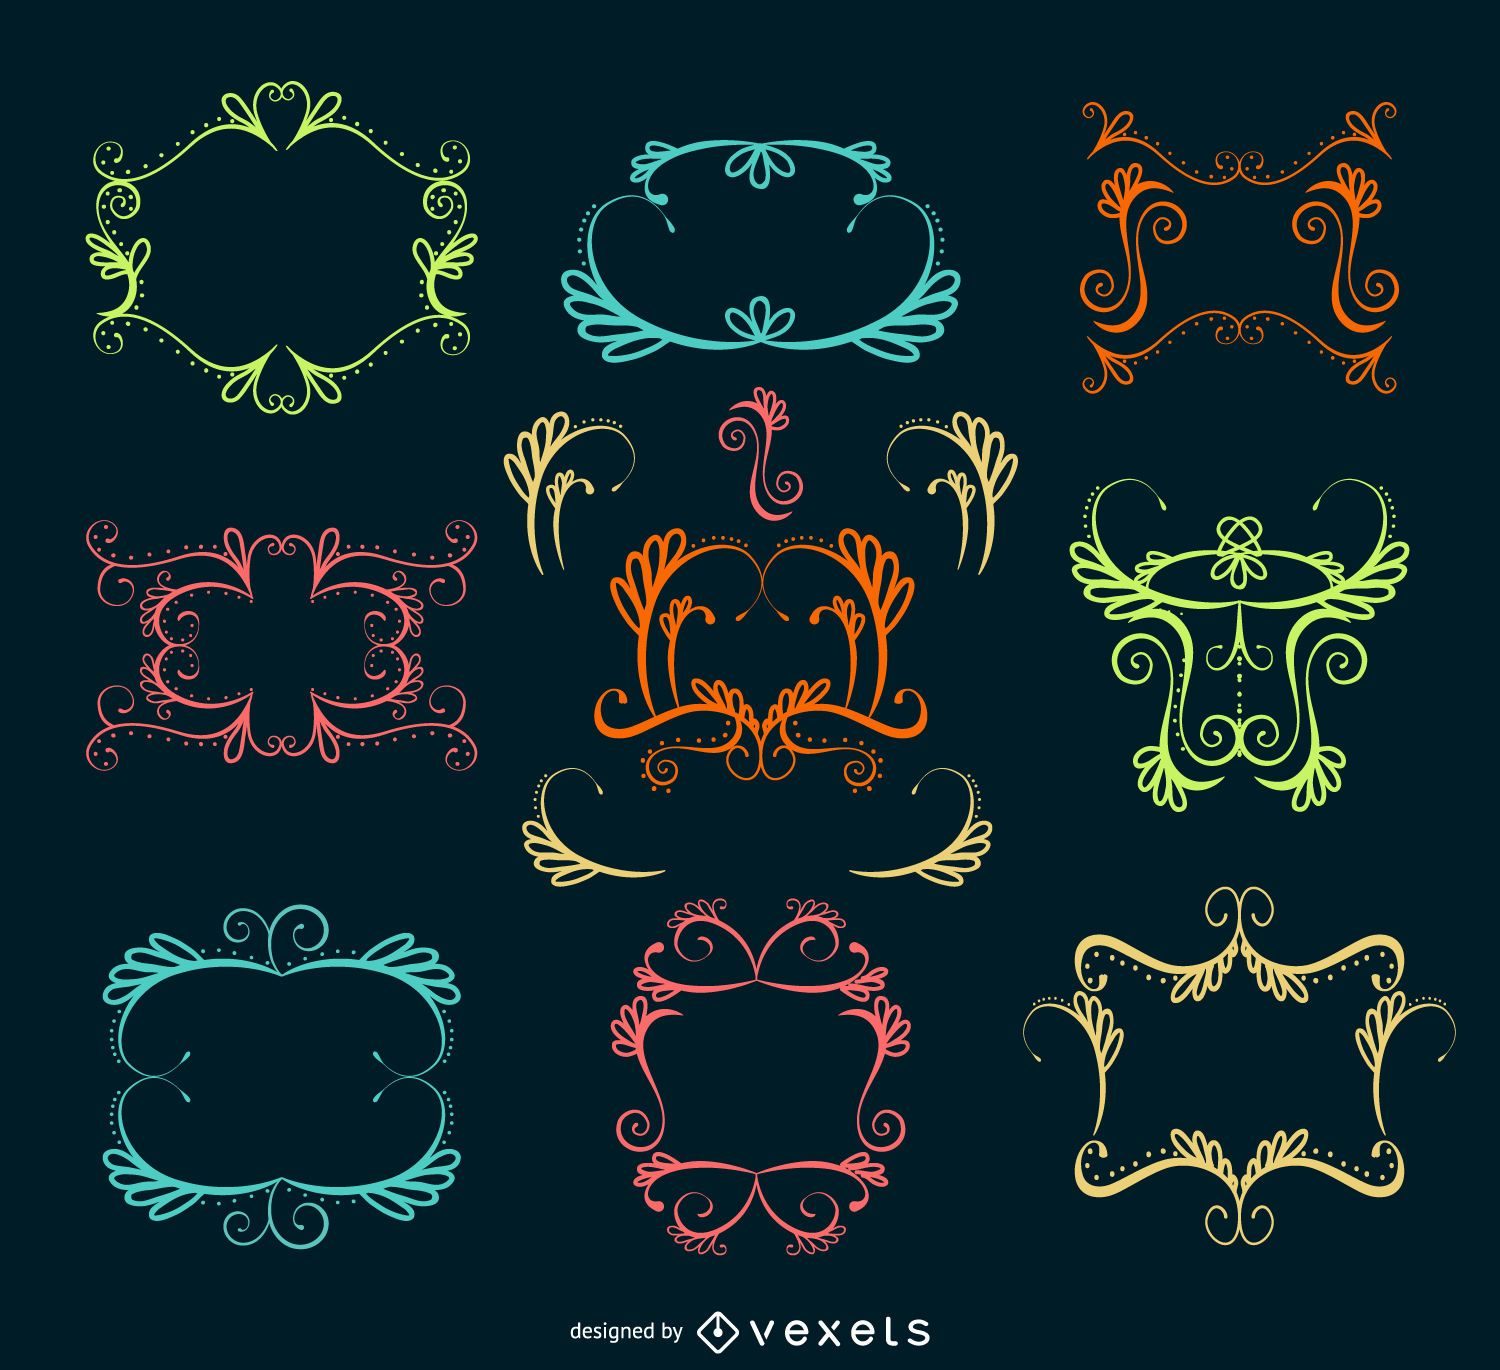 Ornamental swirl frame collection